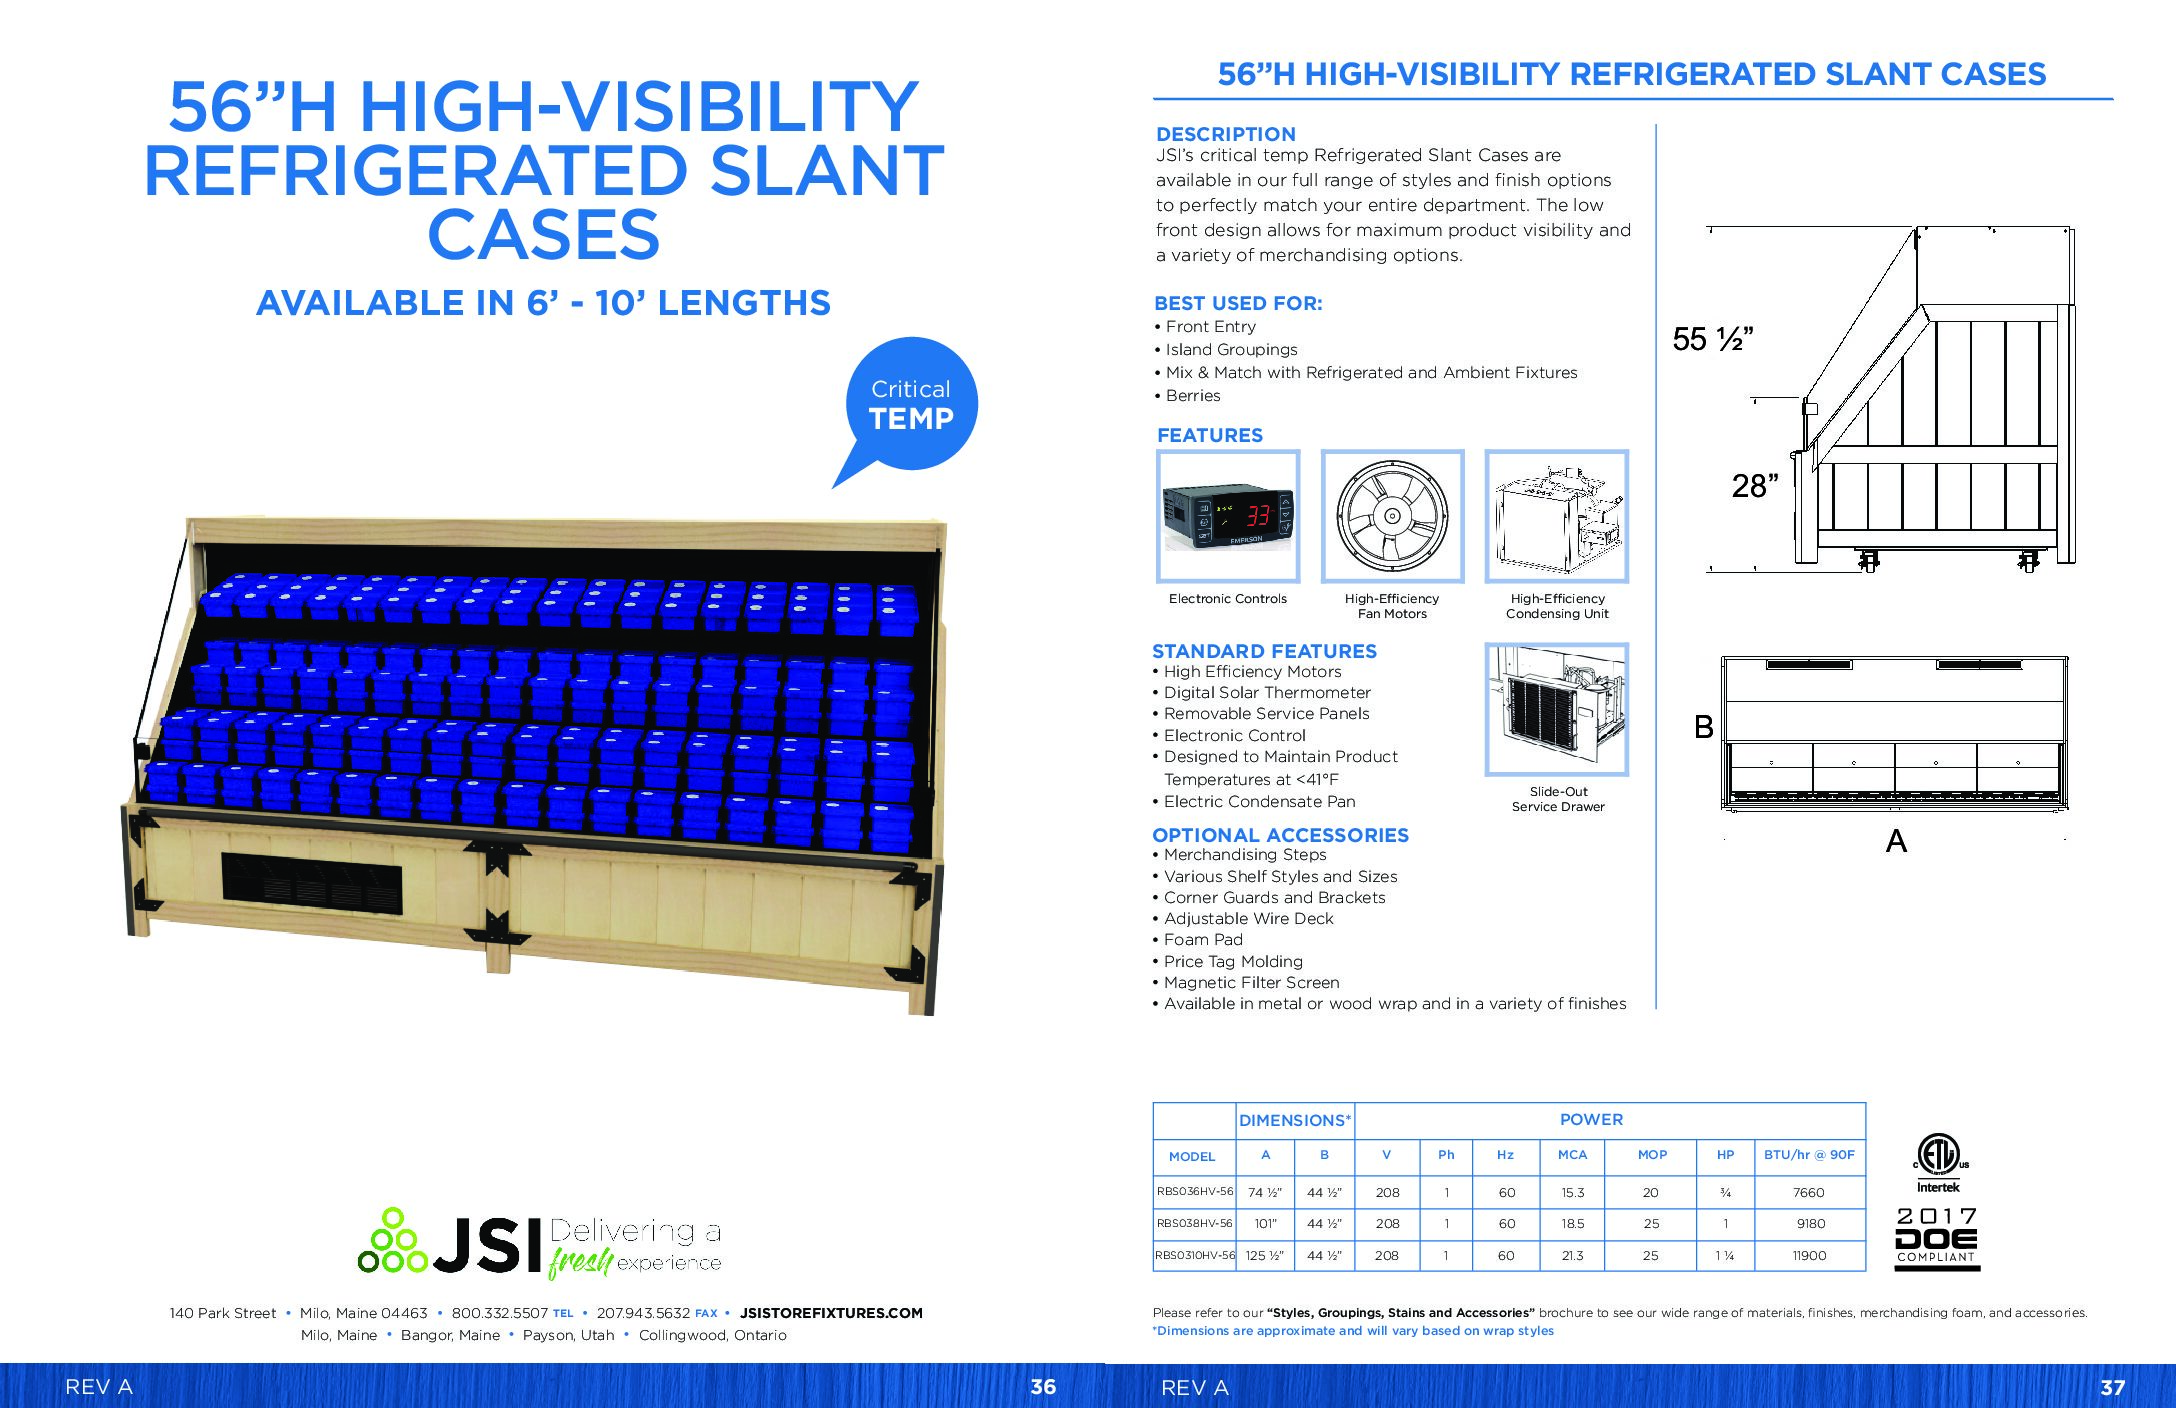 56in High-Visibility Refrigerated Slant Cases 6ft-10ft (PDF)